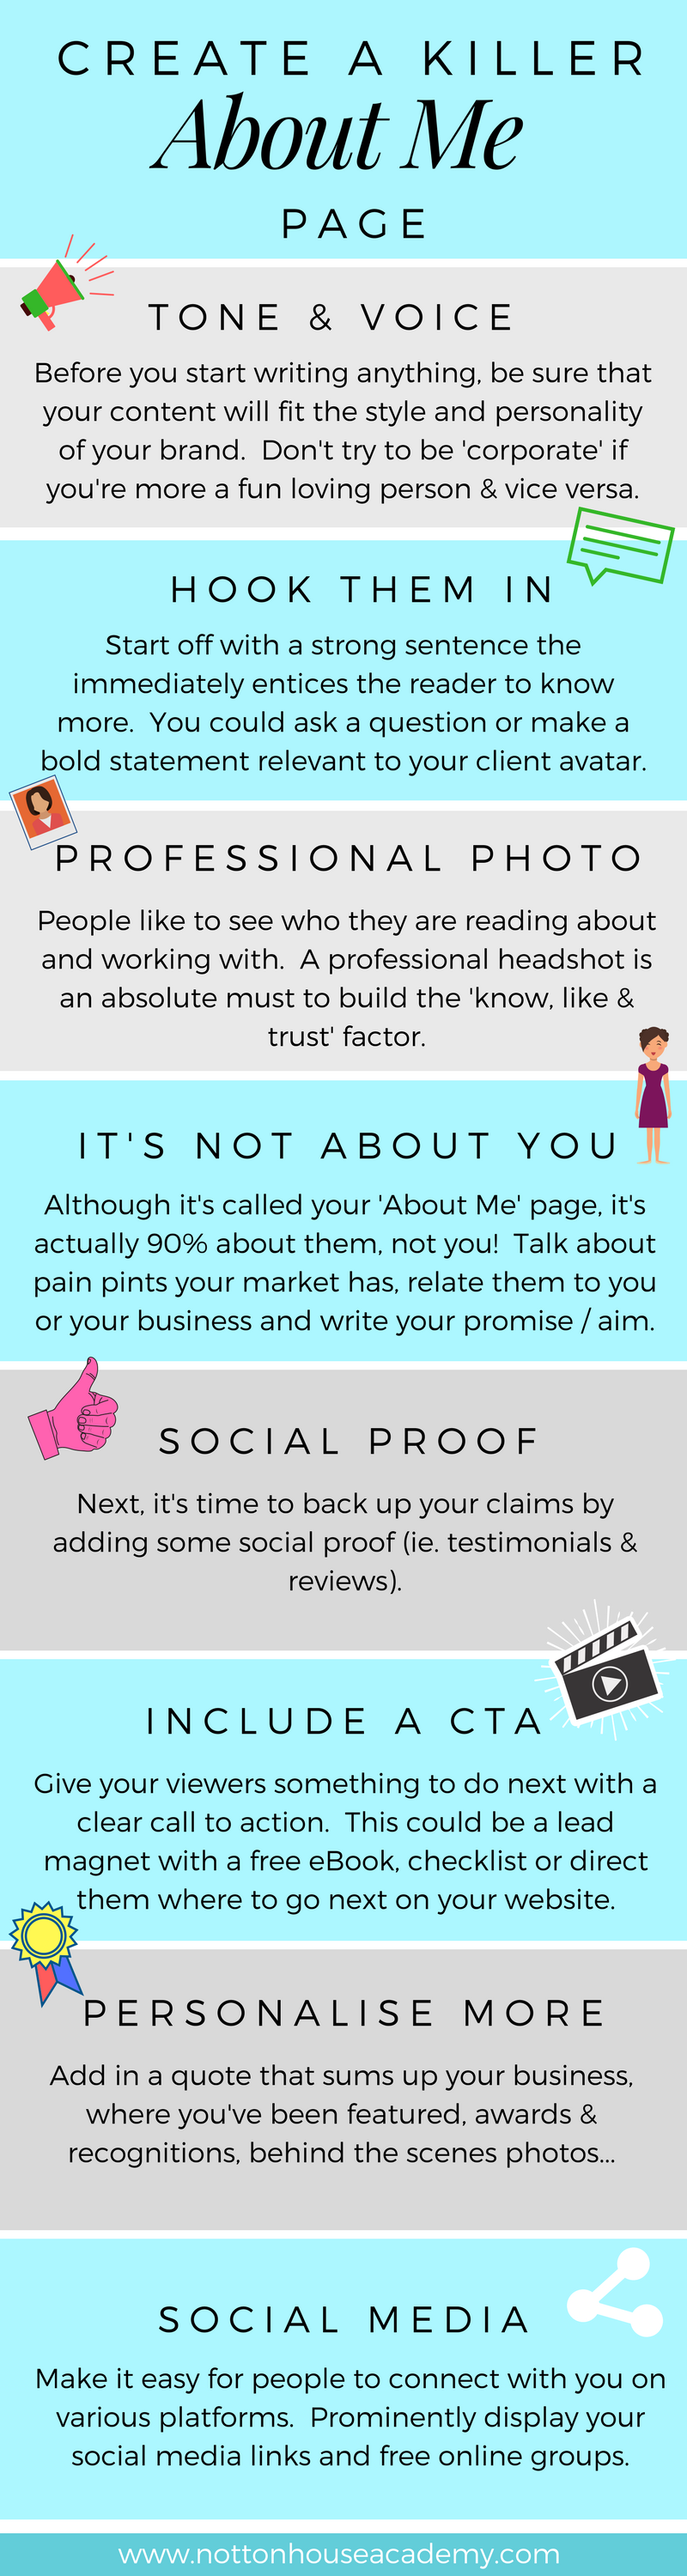 About Me Page Infographic & Checklist -